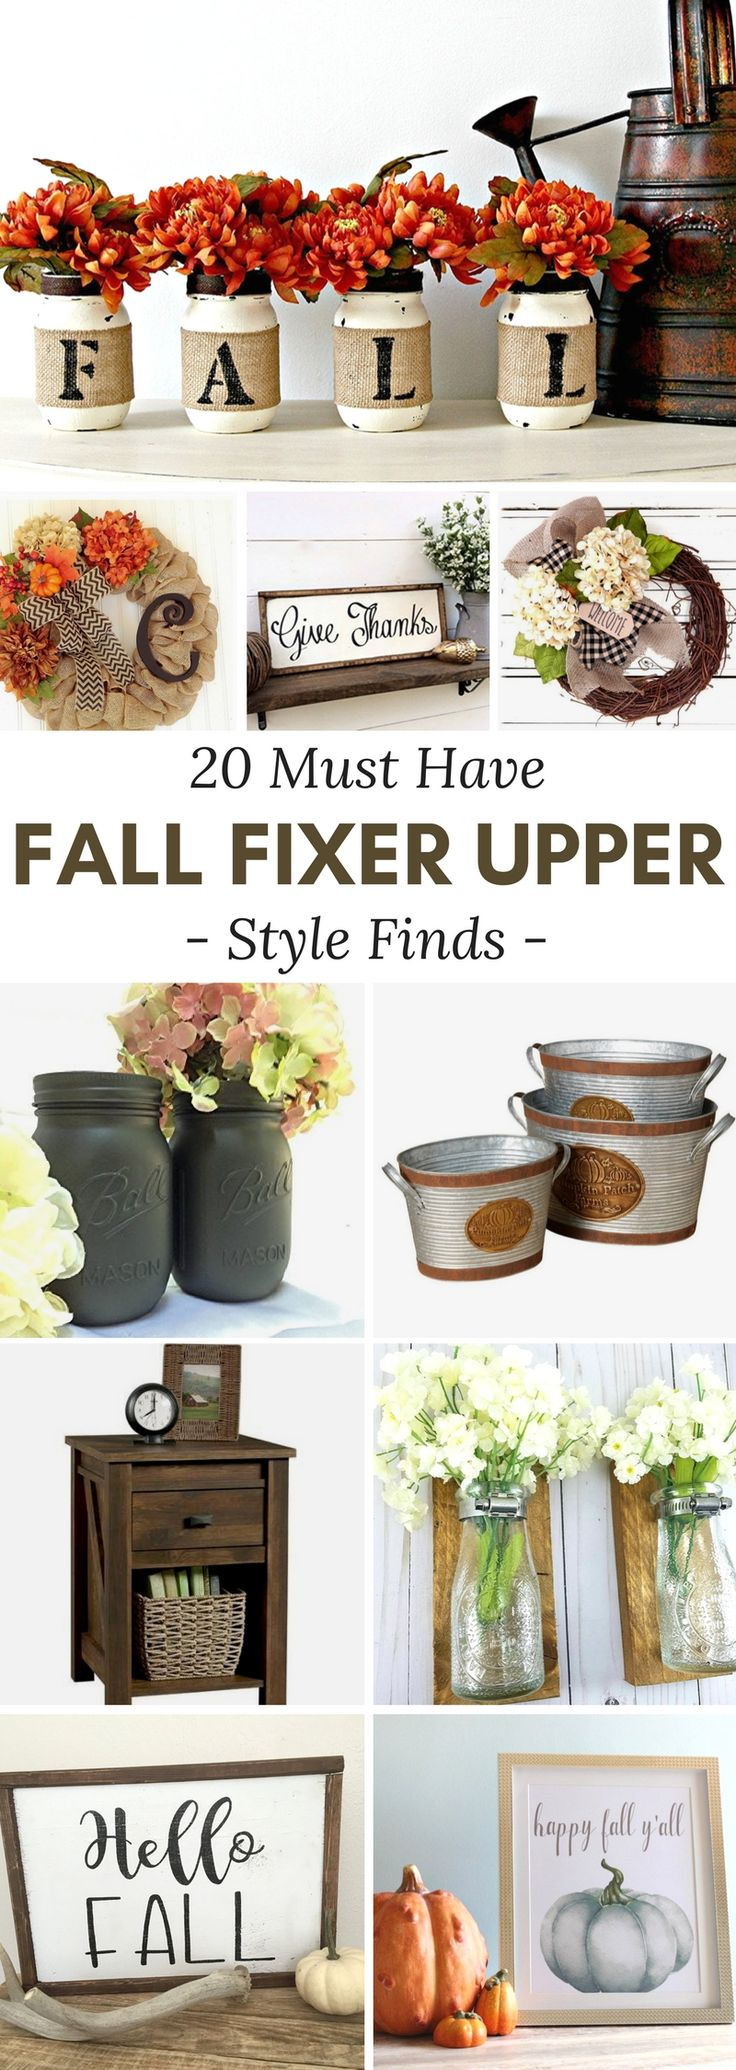 Fall Fixer Upper Style Finds to make your home comfy and cozy for autumn! fall   decor   fixer upper   modern farmhouse